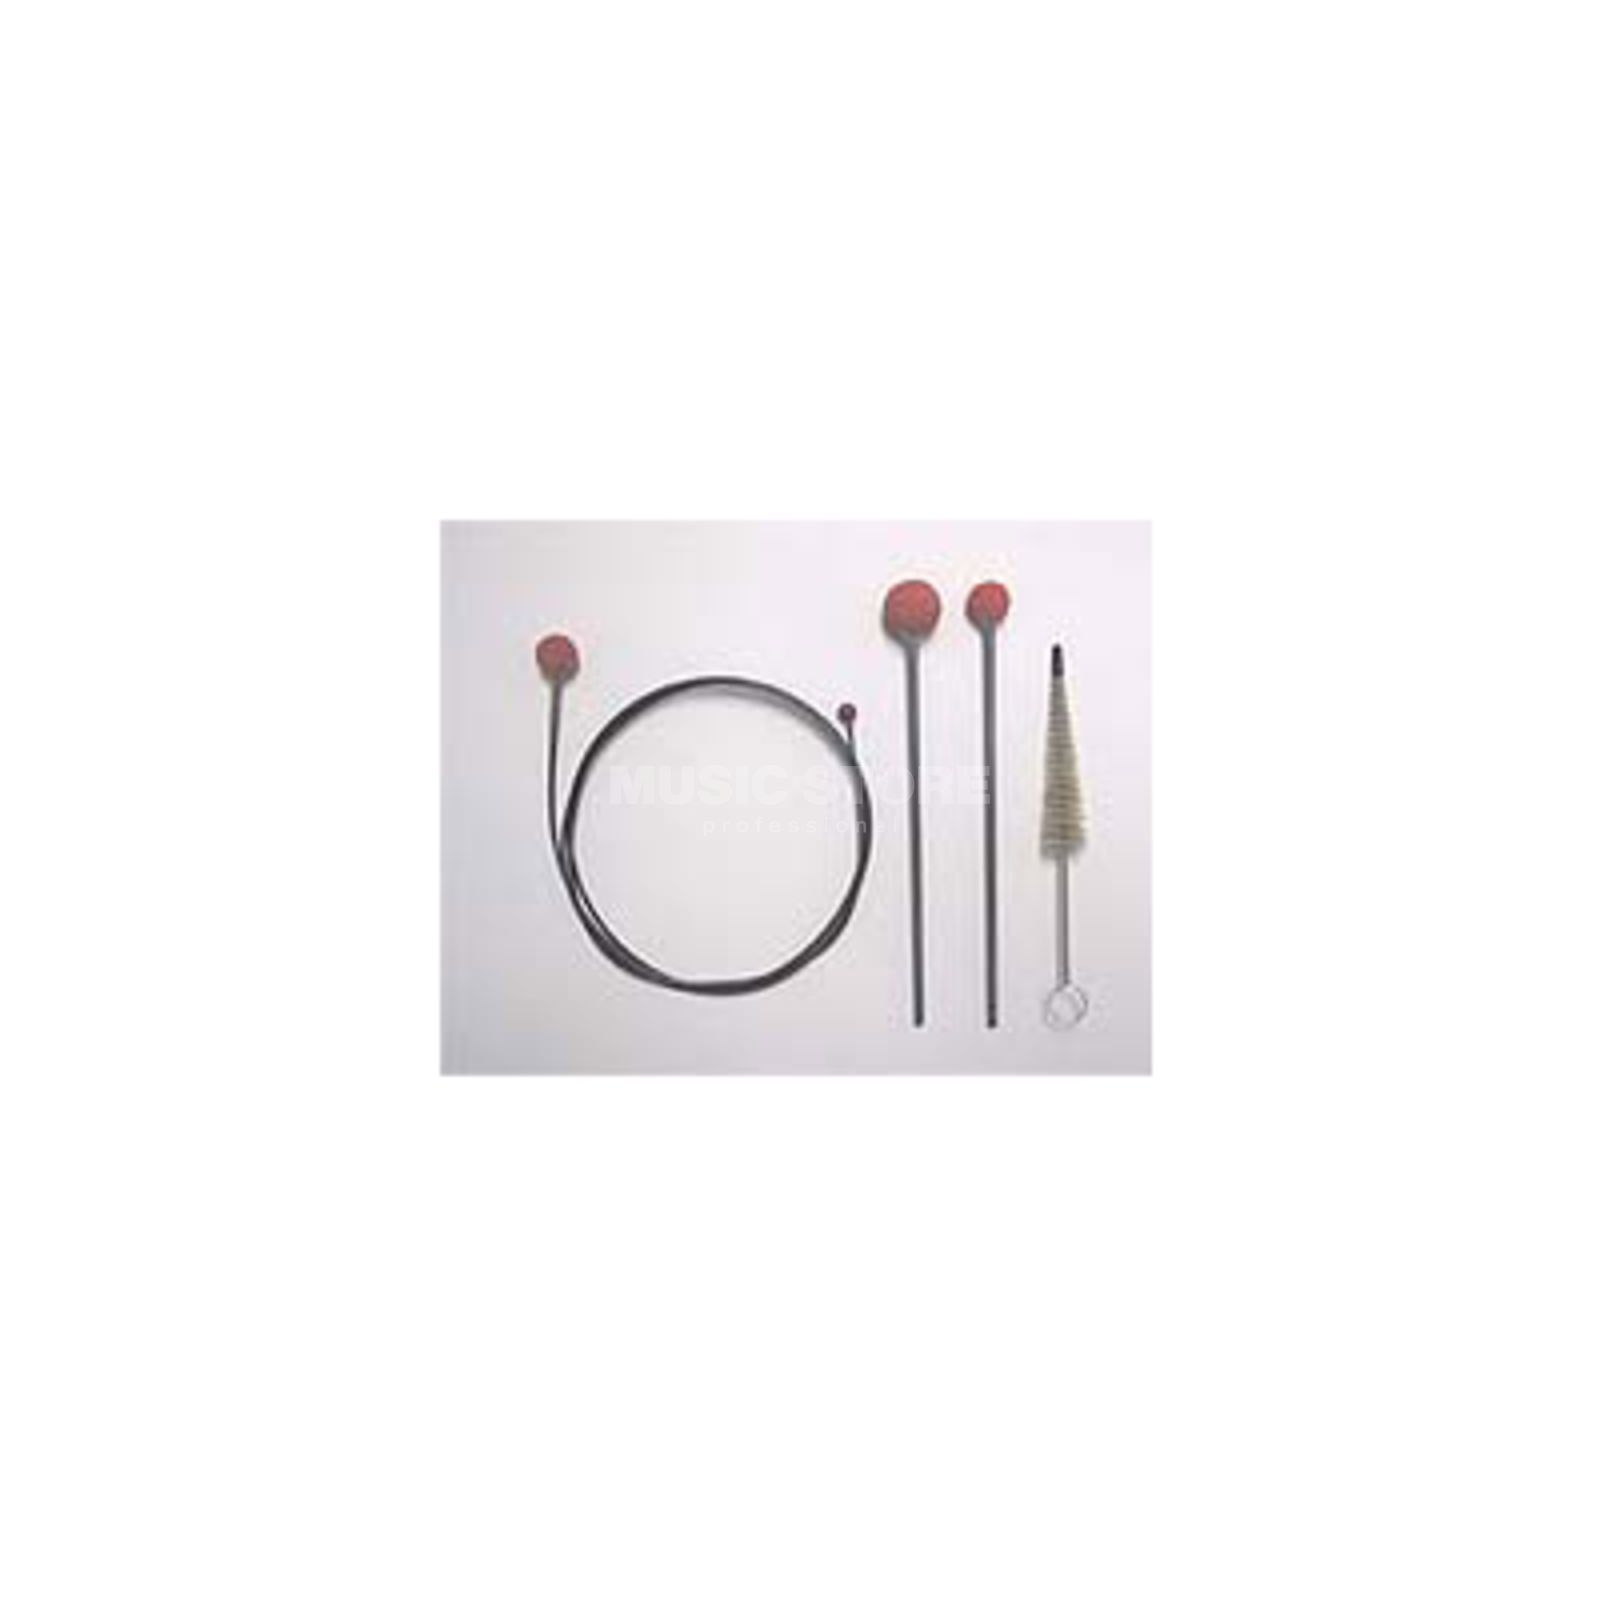 REKA Cleaning Set for Tuba/Sausophone/Helicon Product Image